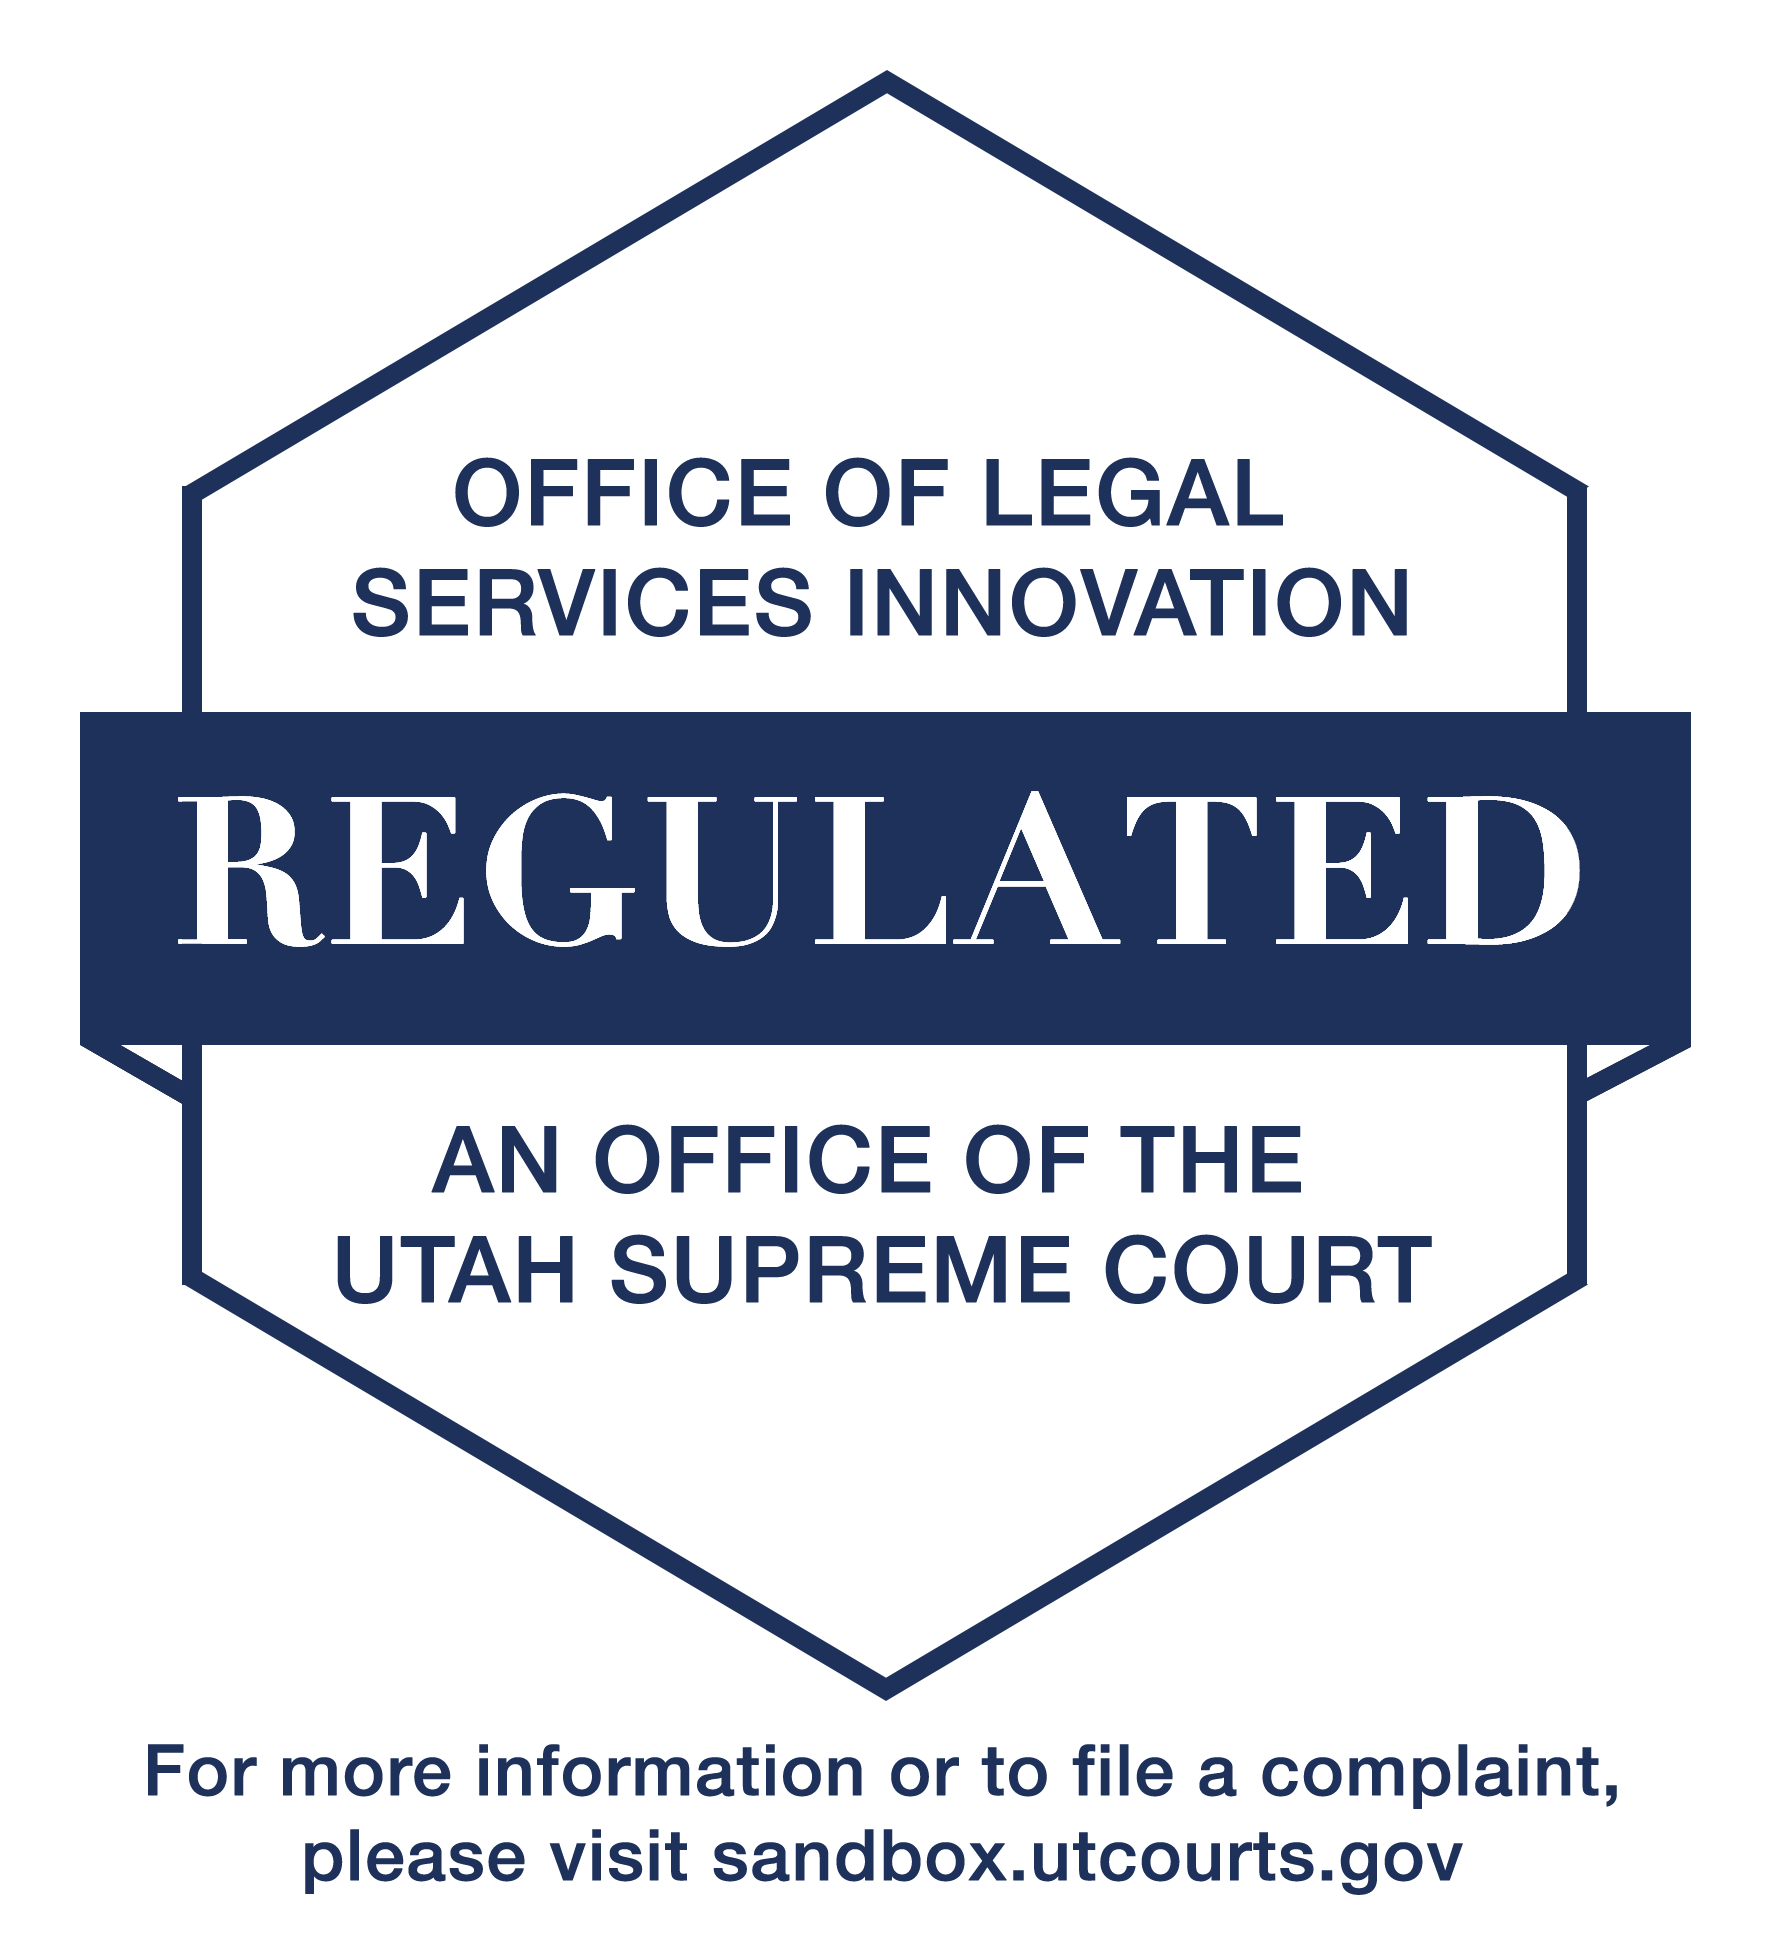 Office of Legal Services Innovation Regulated An Office of the Utah Supreme Court For more information or to file a complaint, please visit sandbox.utcourts.gov